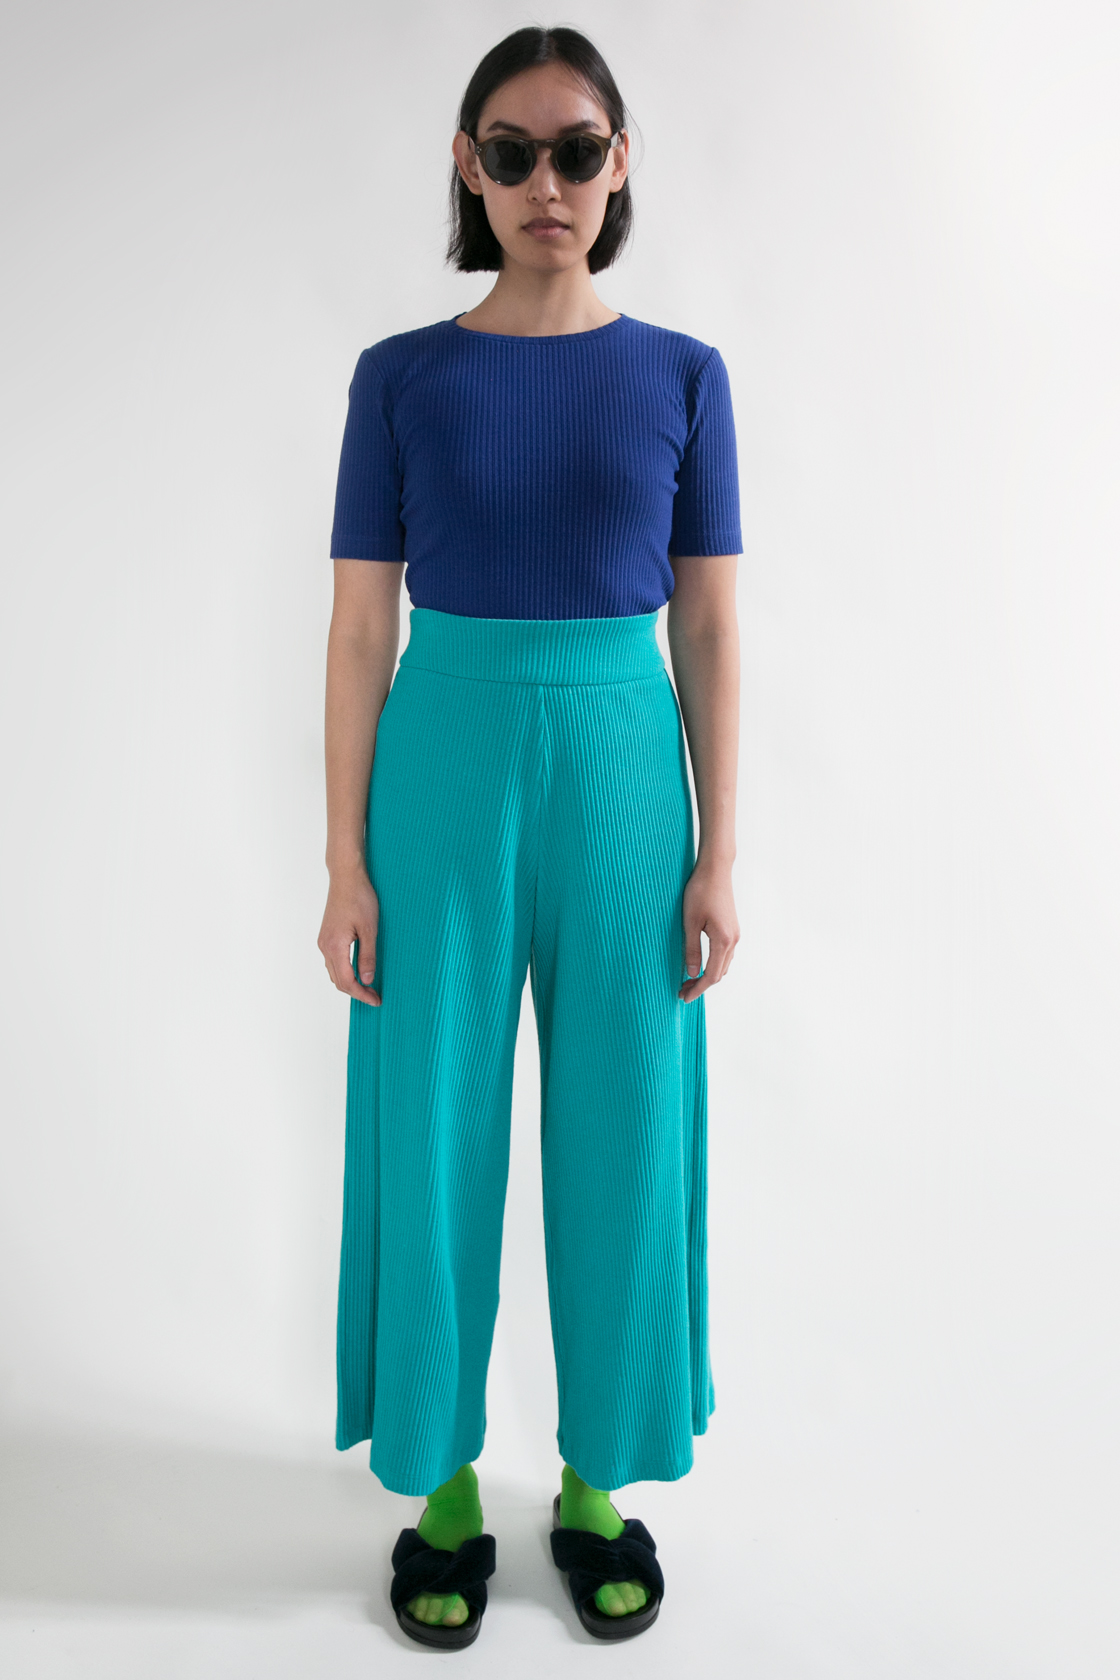 Basic Color Pant  XS S M L All Colors  $270